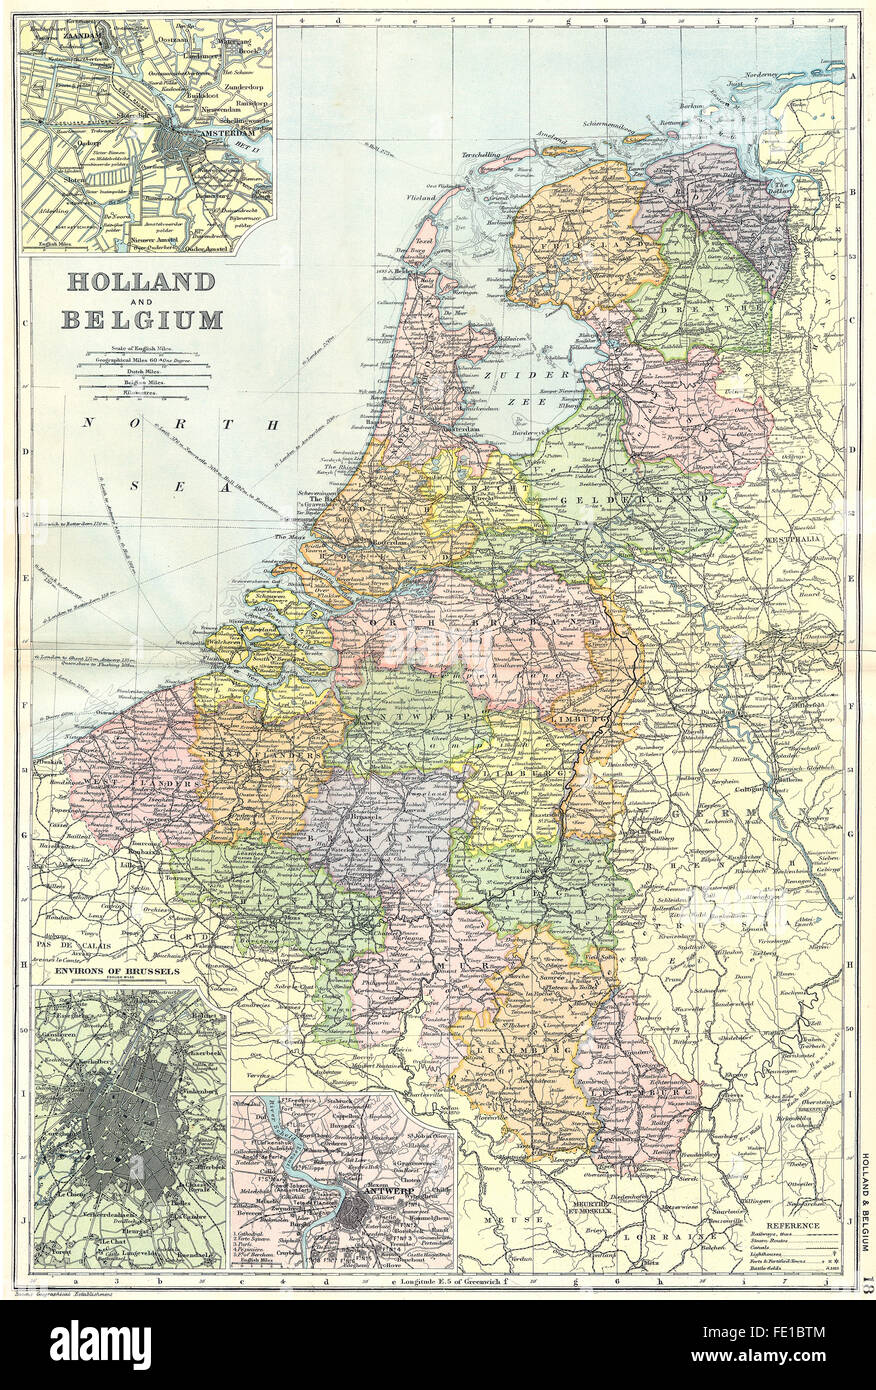 netherlands belgium amsterdam brussels antwerp 1905 antique map